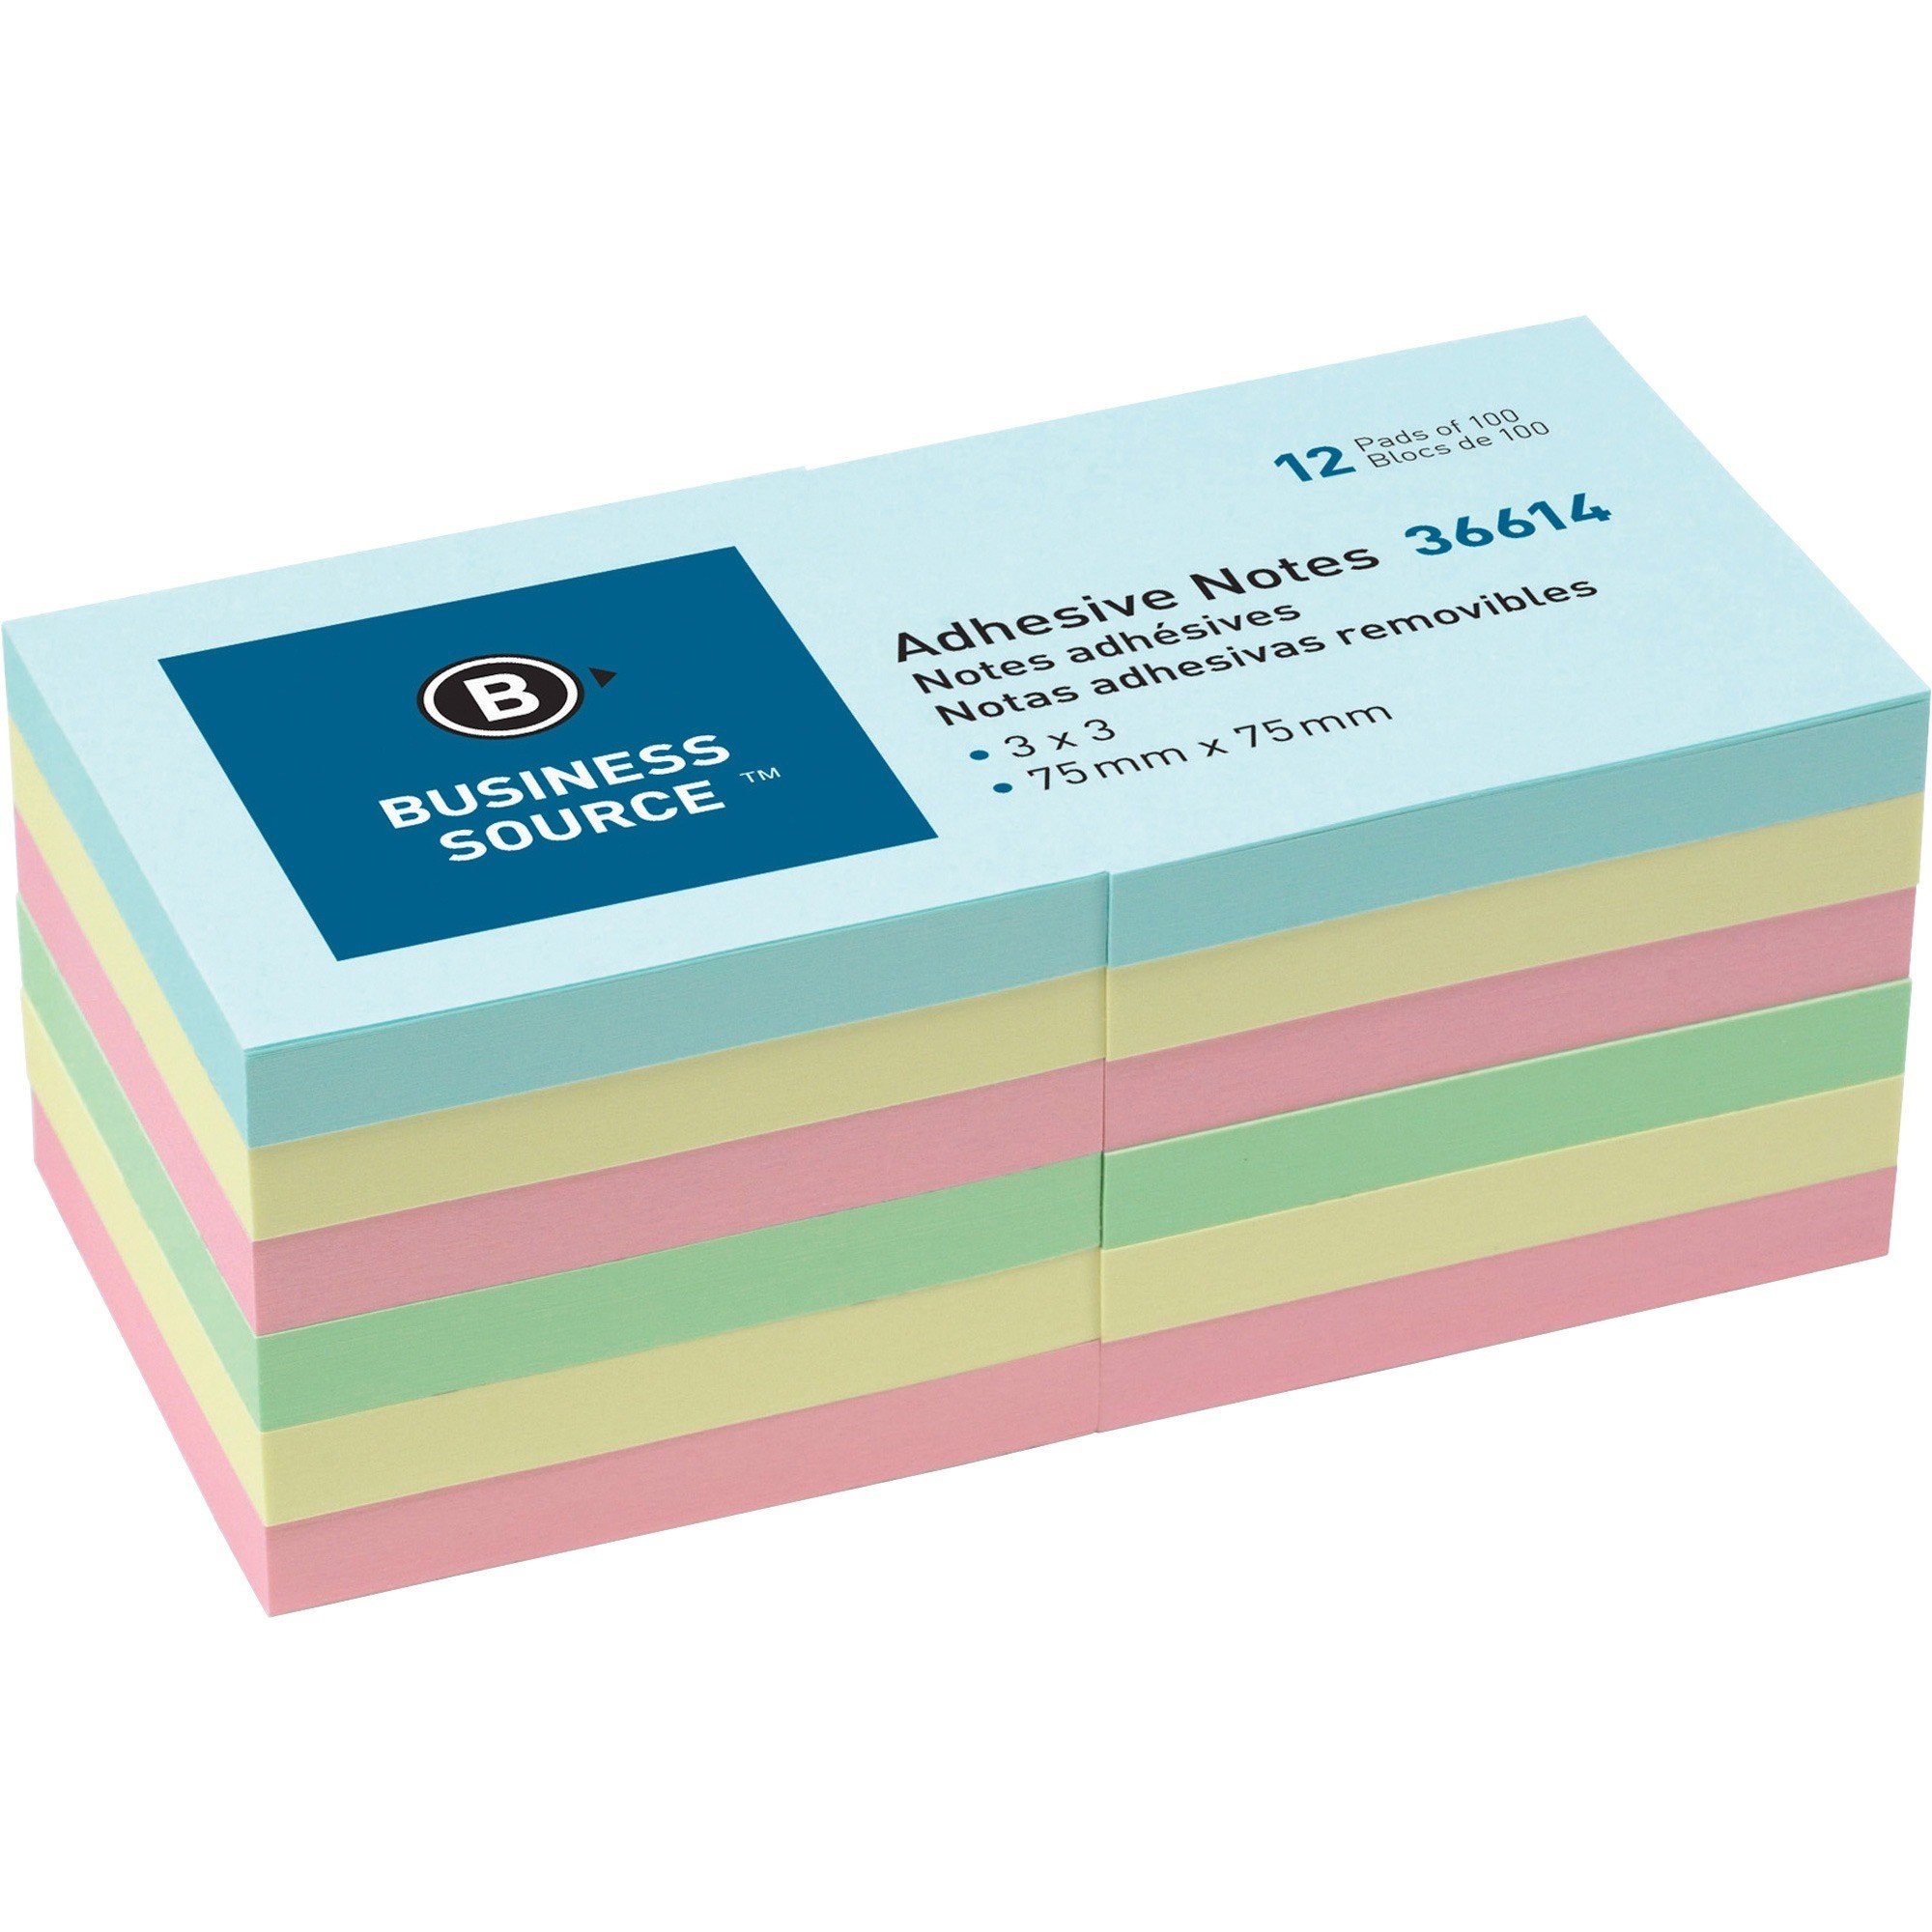 "Business Source Plain Pastel Colors Adhesive Notes 3""x 3"" 12/Pack"